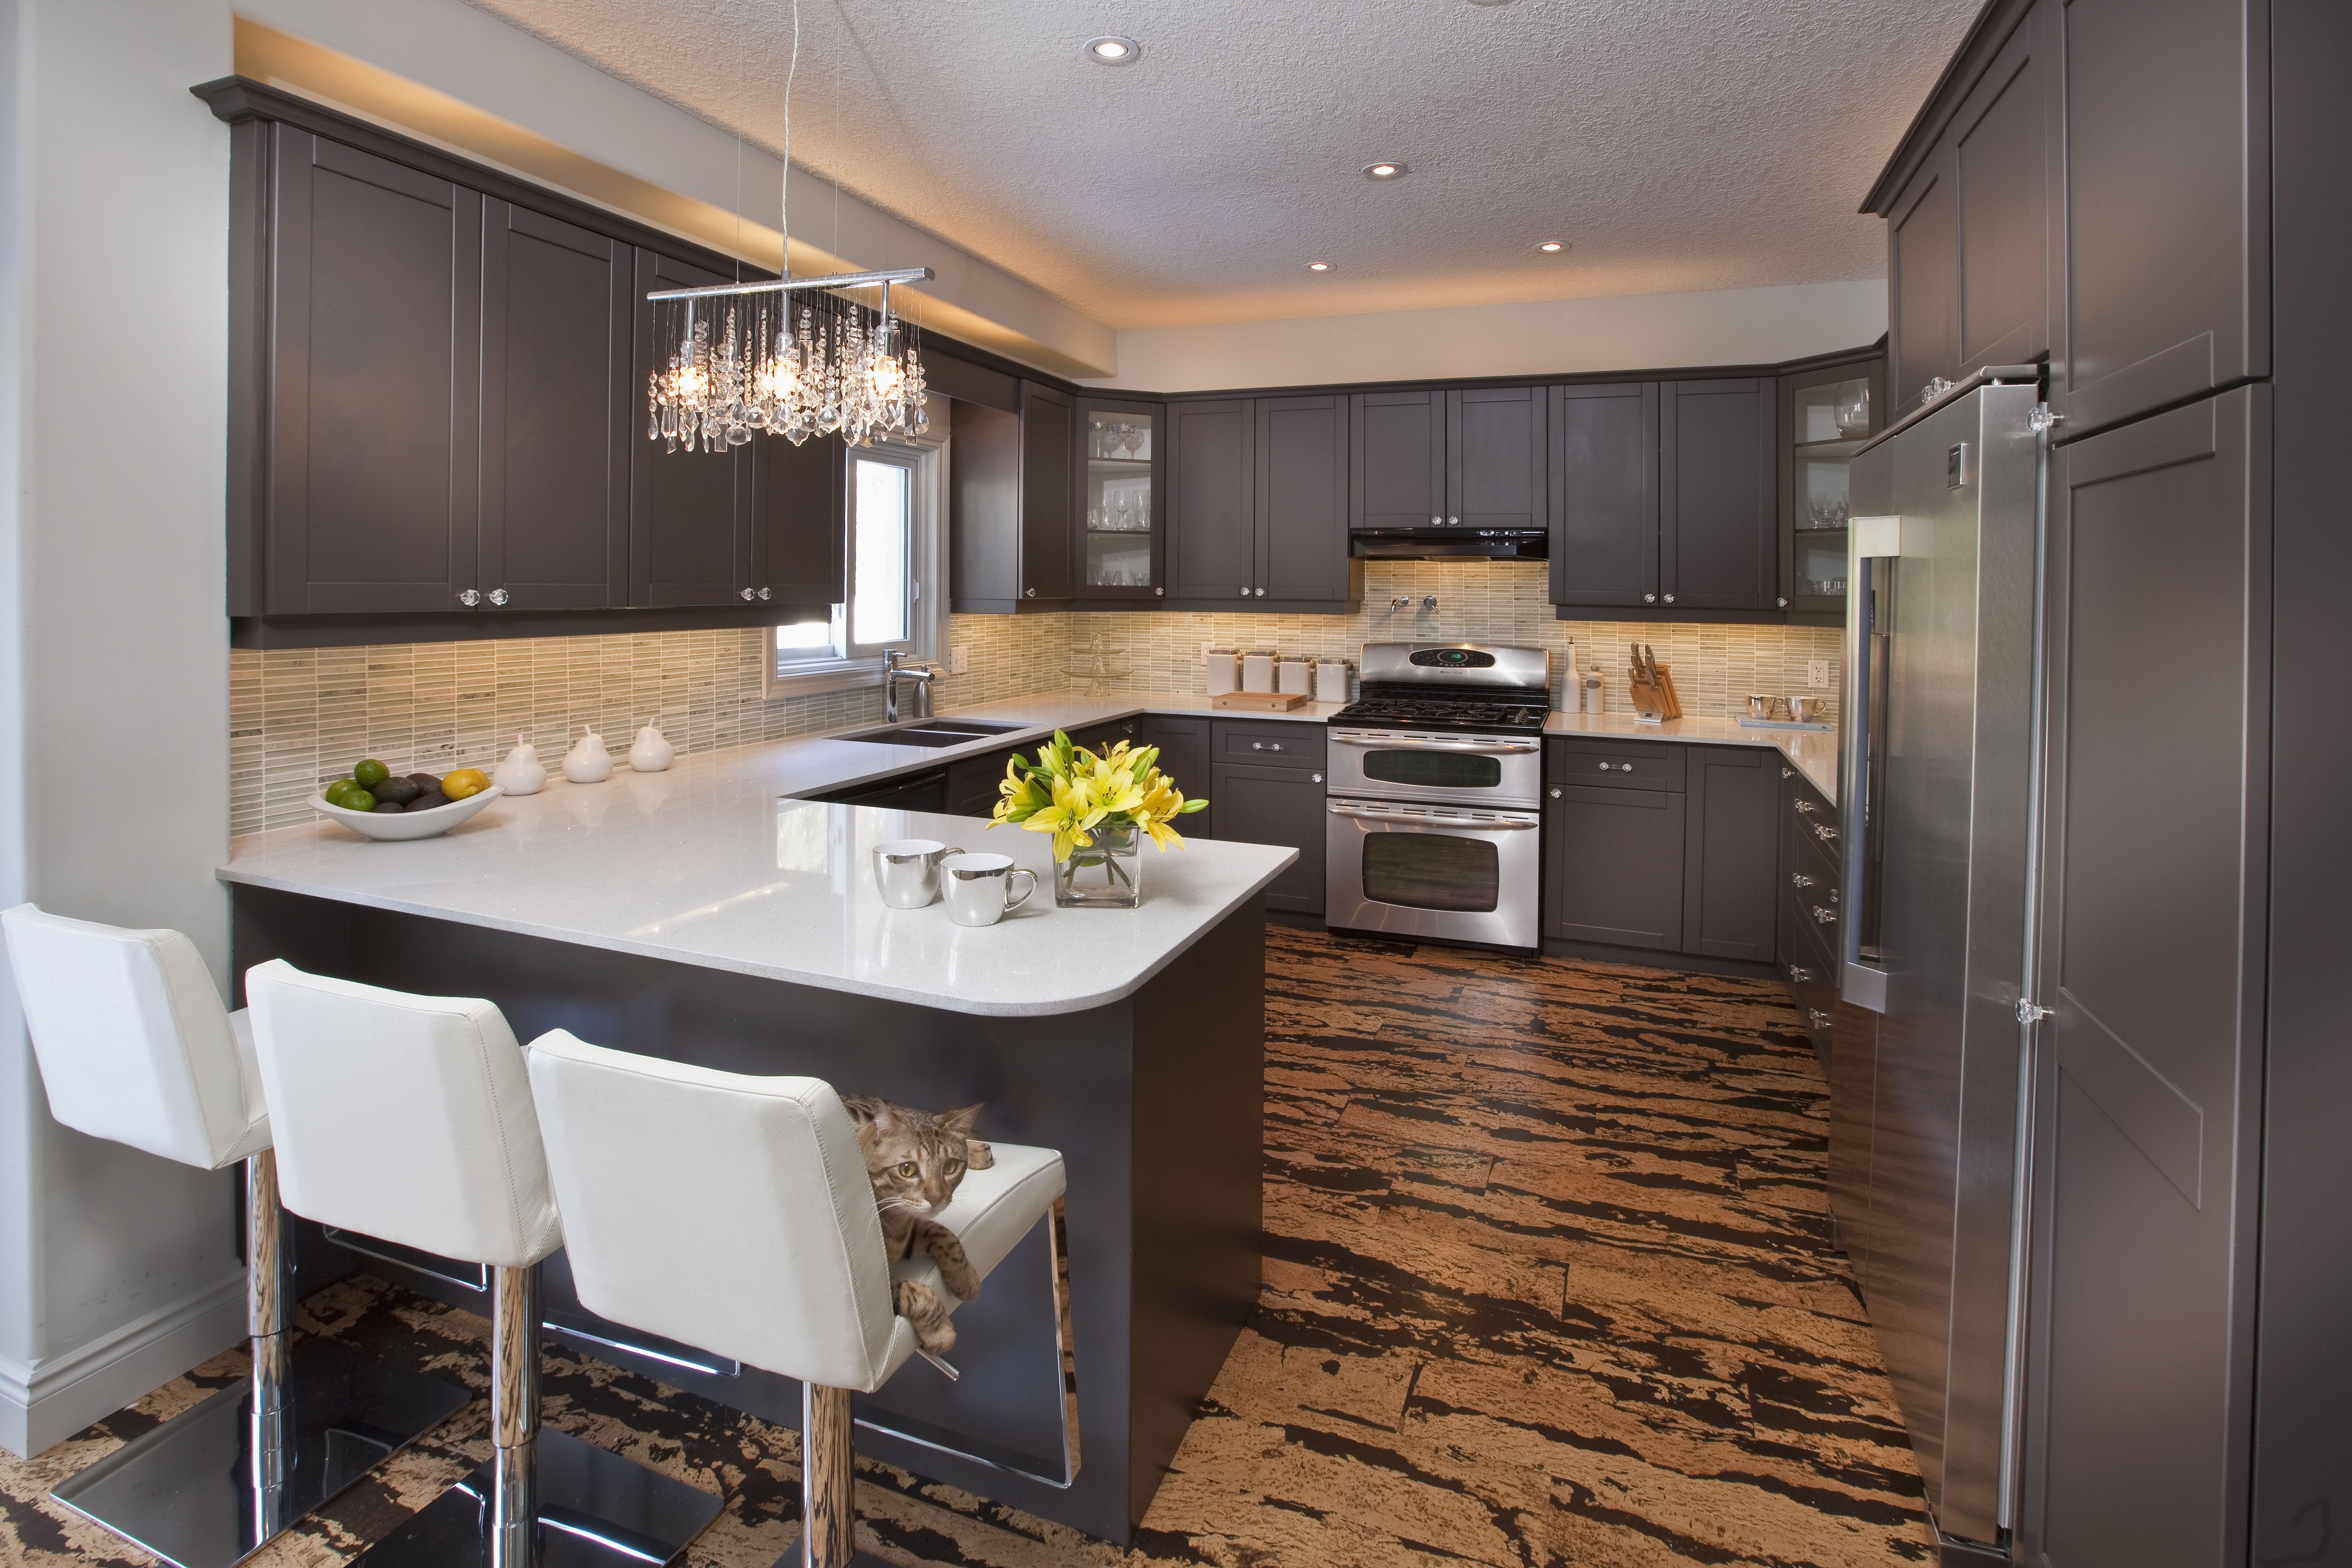 laminated linoleum island by kitchen slide flooring floors ranges countertop pendant for in two dark dining part steel all chandeliers lights table floor traditional innate marble black stainless gas wood refrigerator side